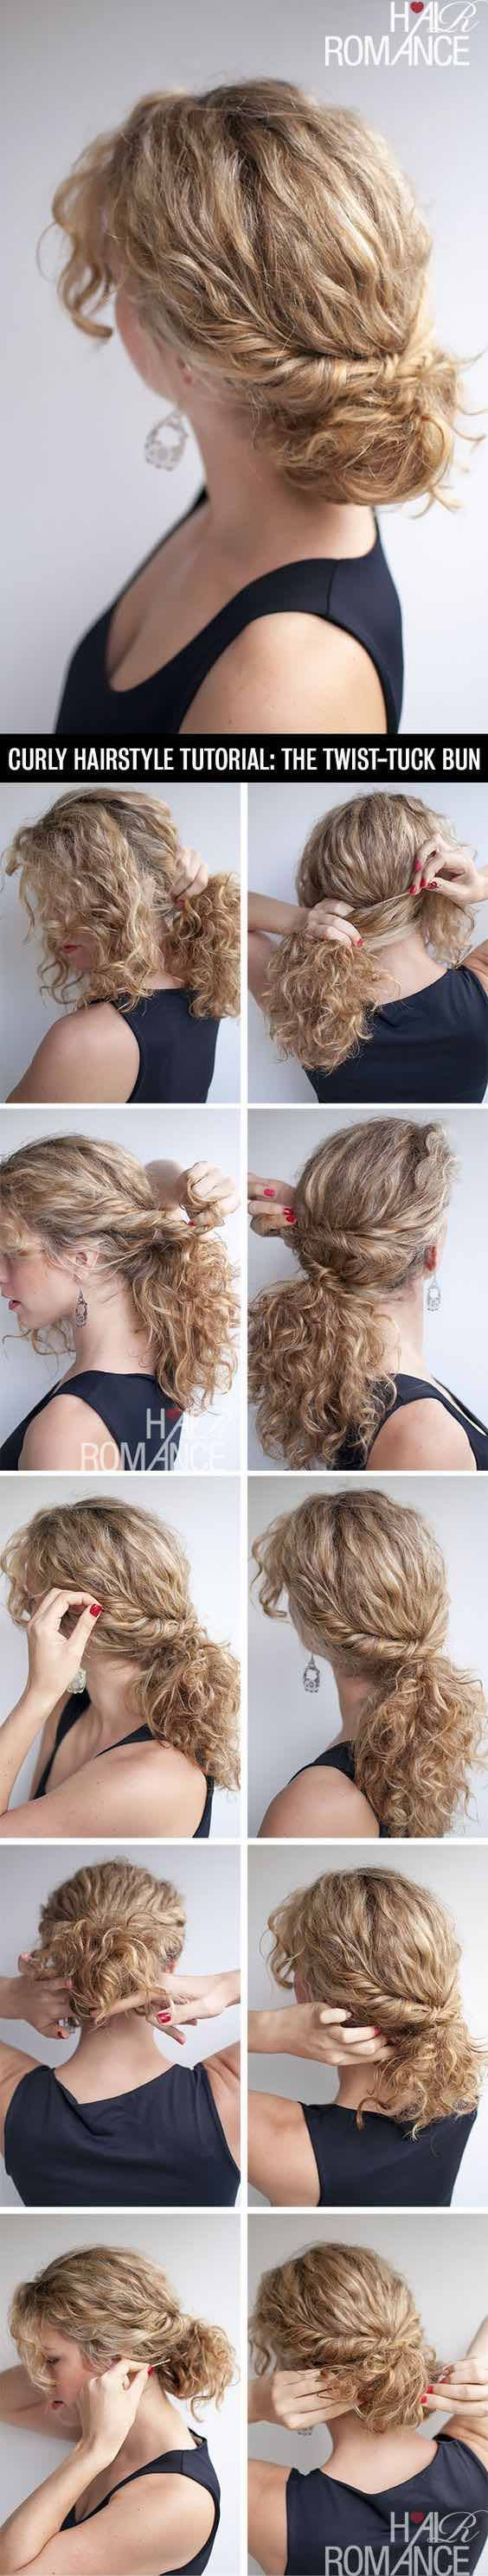 We're back with more adorable wedding hairstyle tutorials from Hair Romance! This time they've brought us more styles for curly-haired ladies and long-haired goddesses, and even flawless looks for the gym. To get the full scoop on these overly cute wedding hairstyle tutorials, click on the links for some easy-to-follow steps! Enjoy these inspiring braids […]